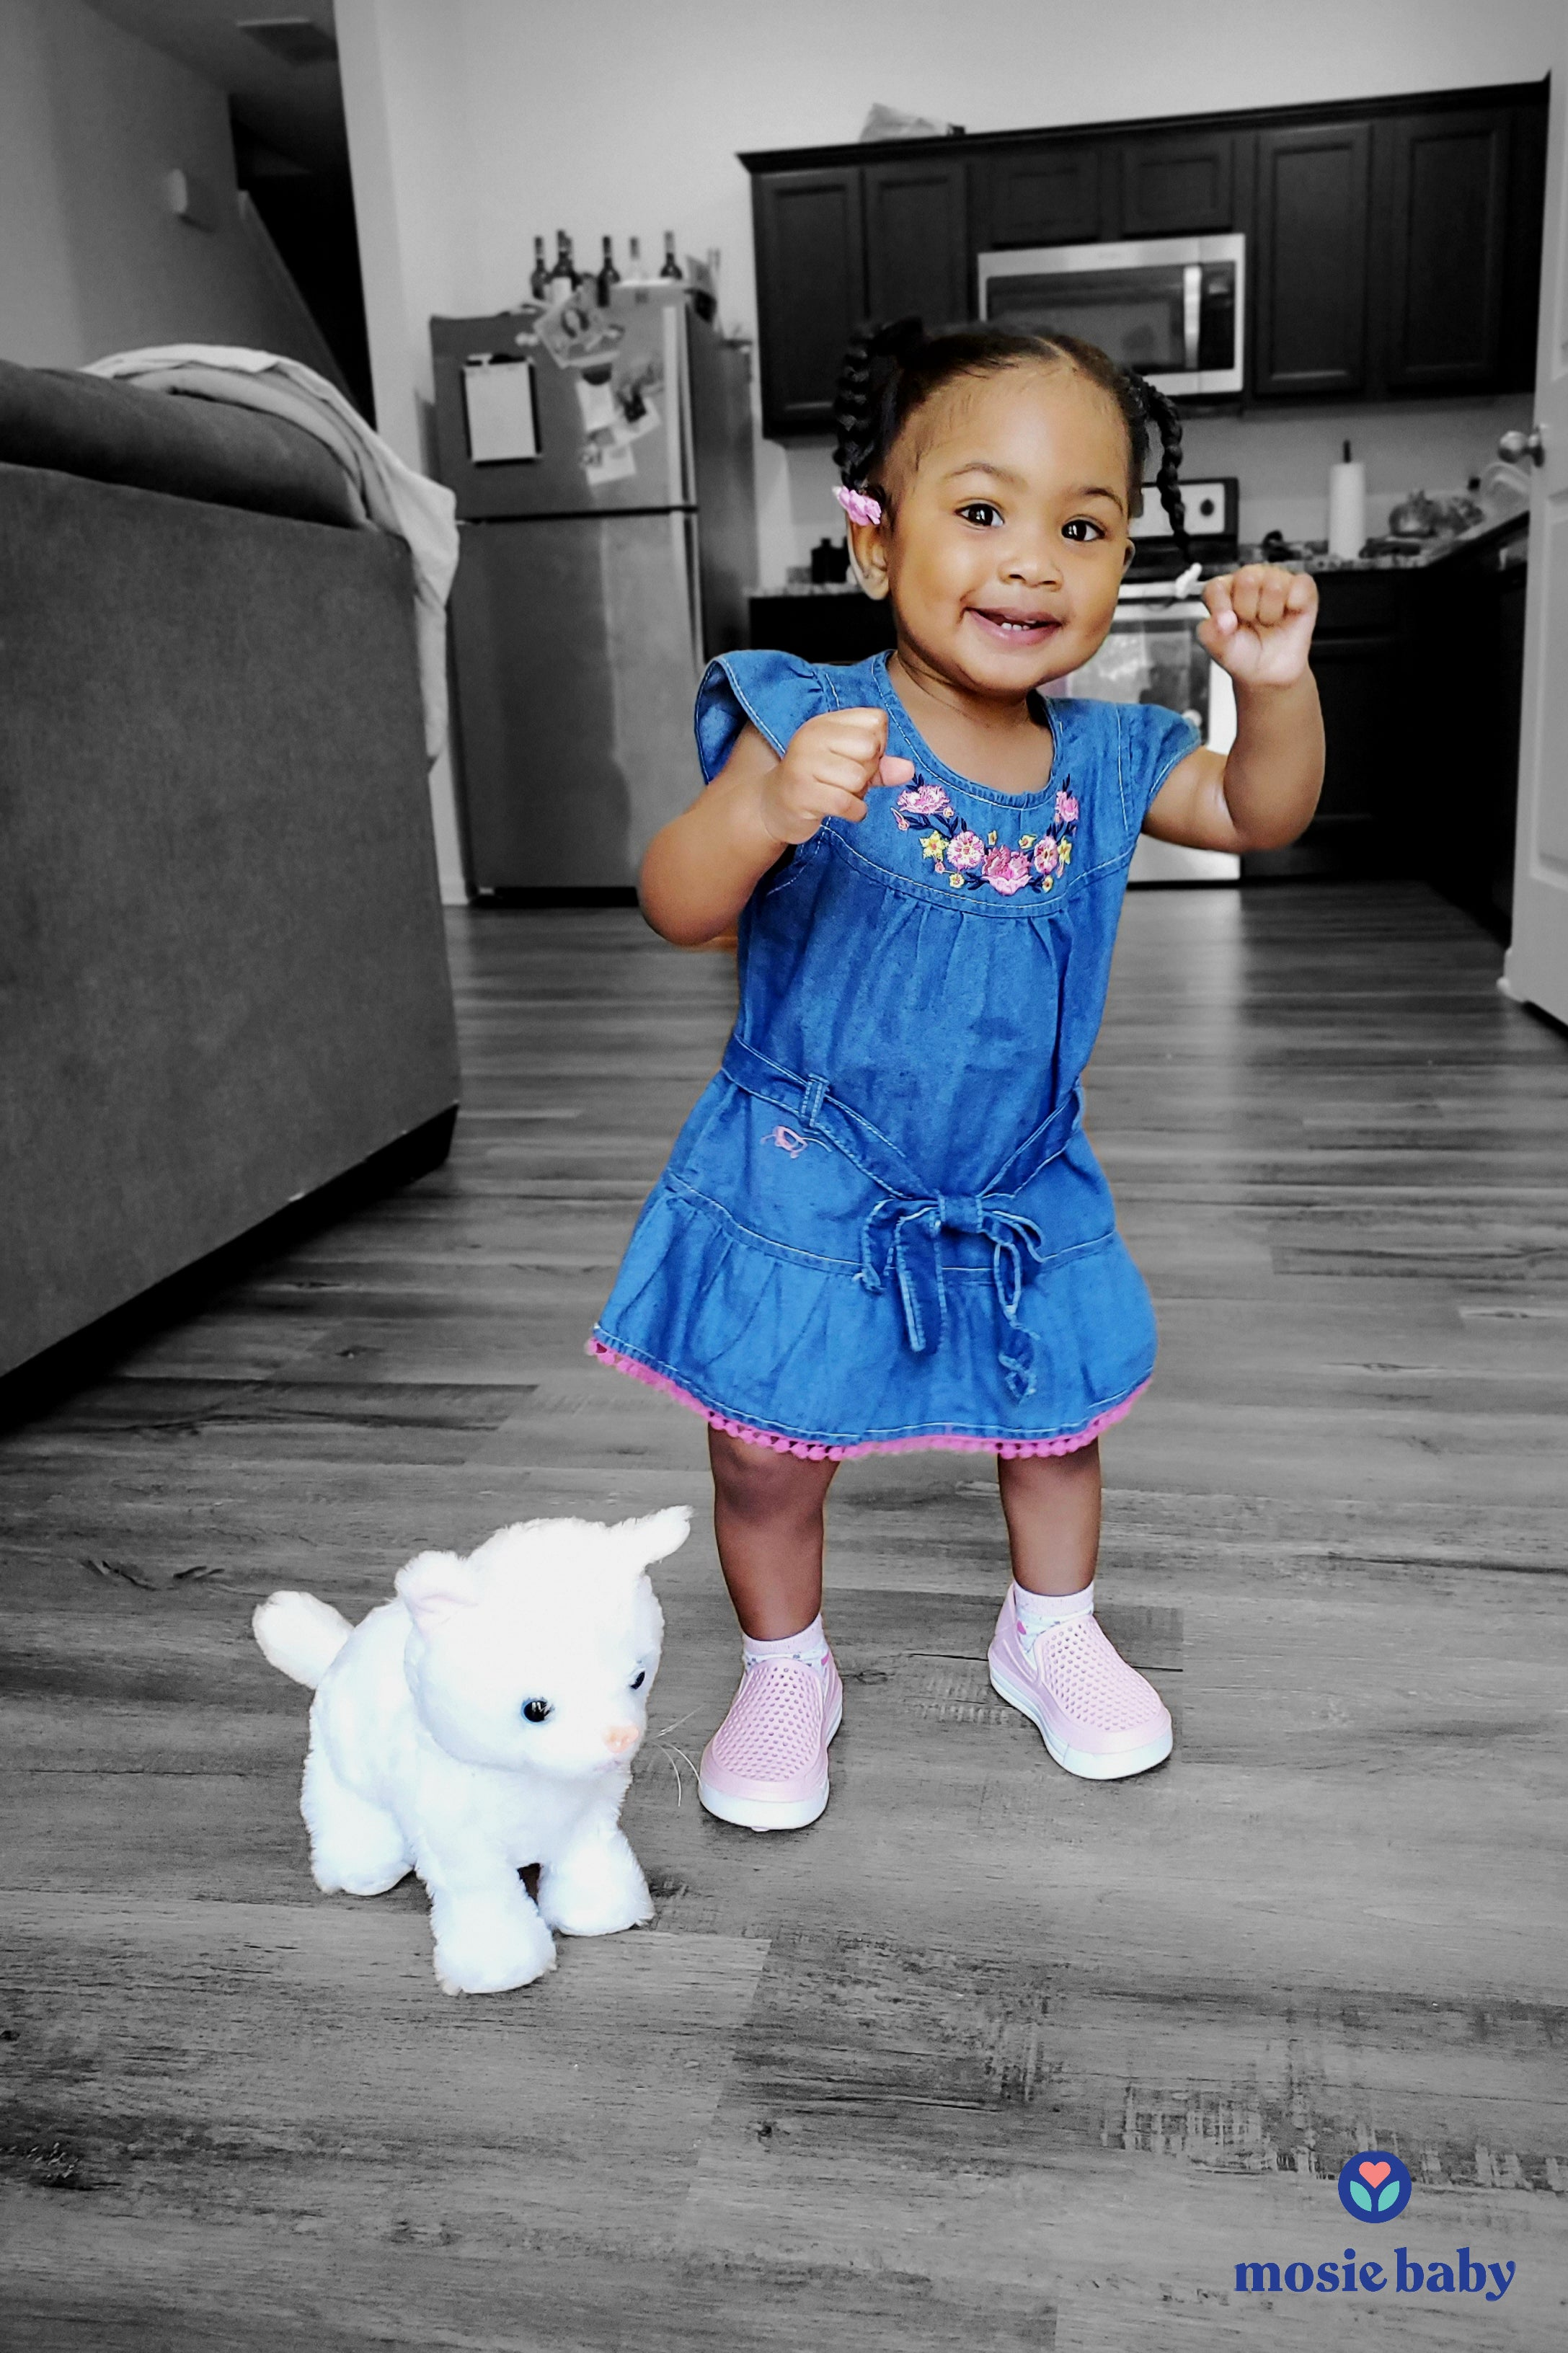 Young toddler standing with stuffed animal